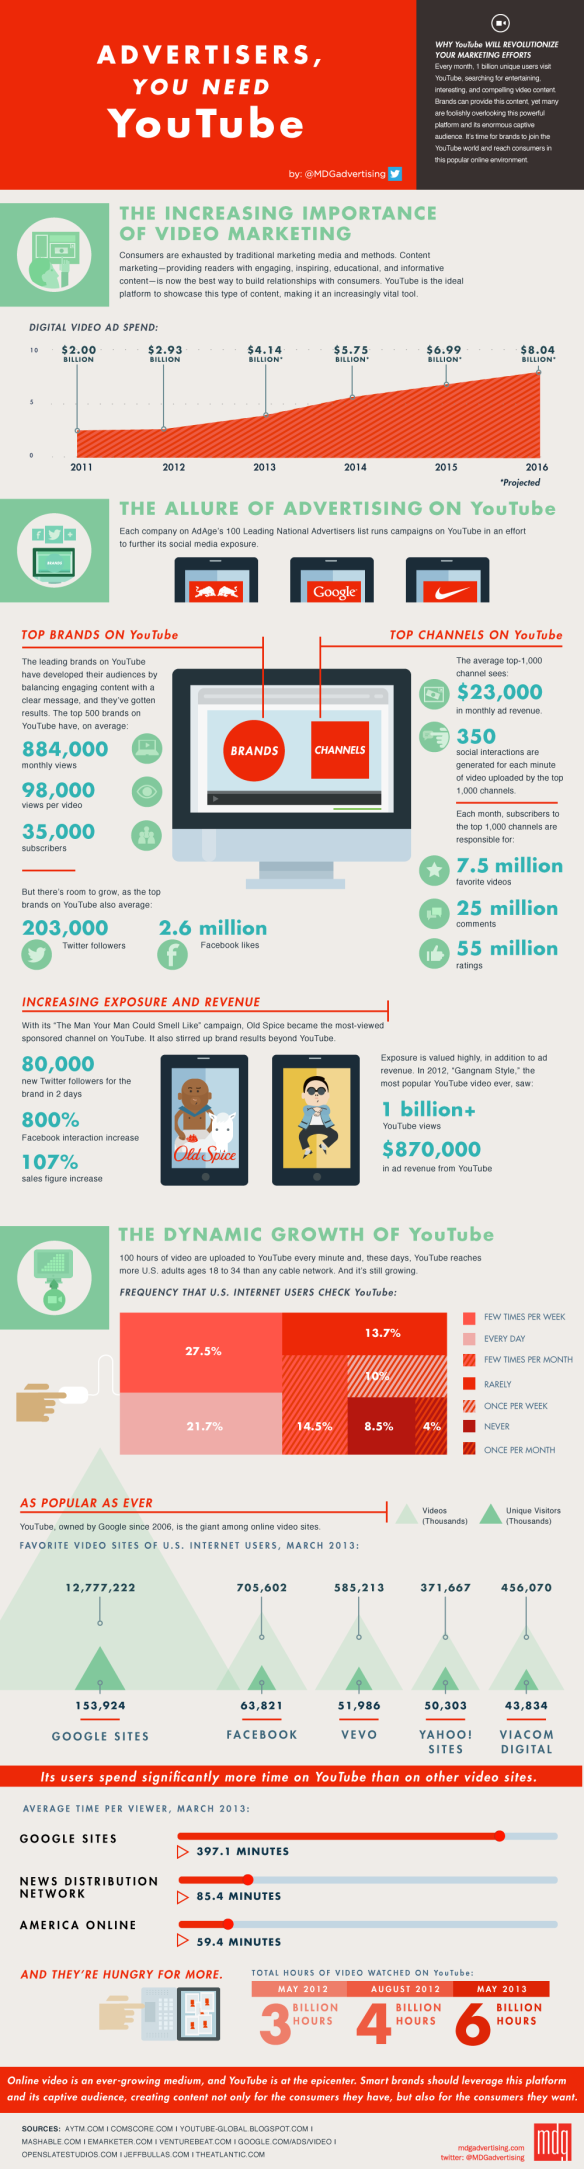 infographic-advertisers-you-need-youtube-1000